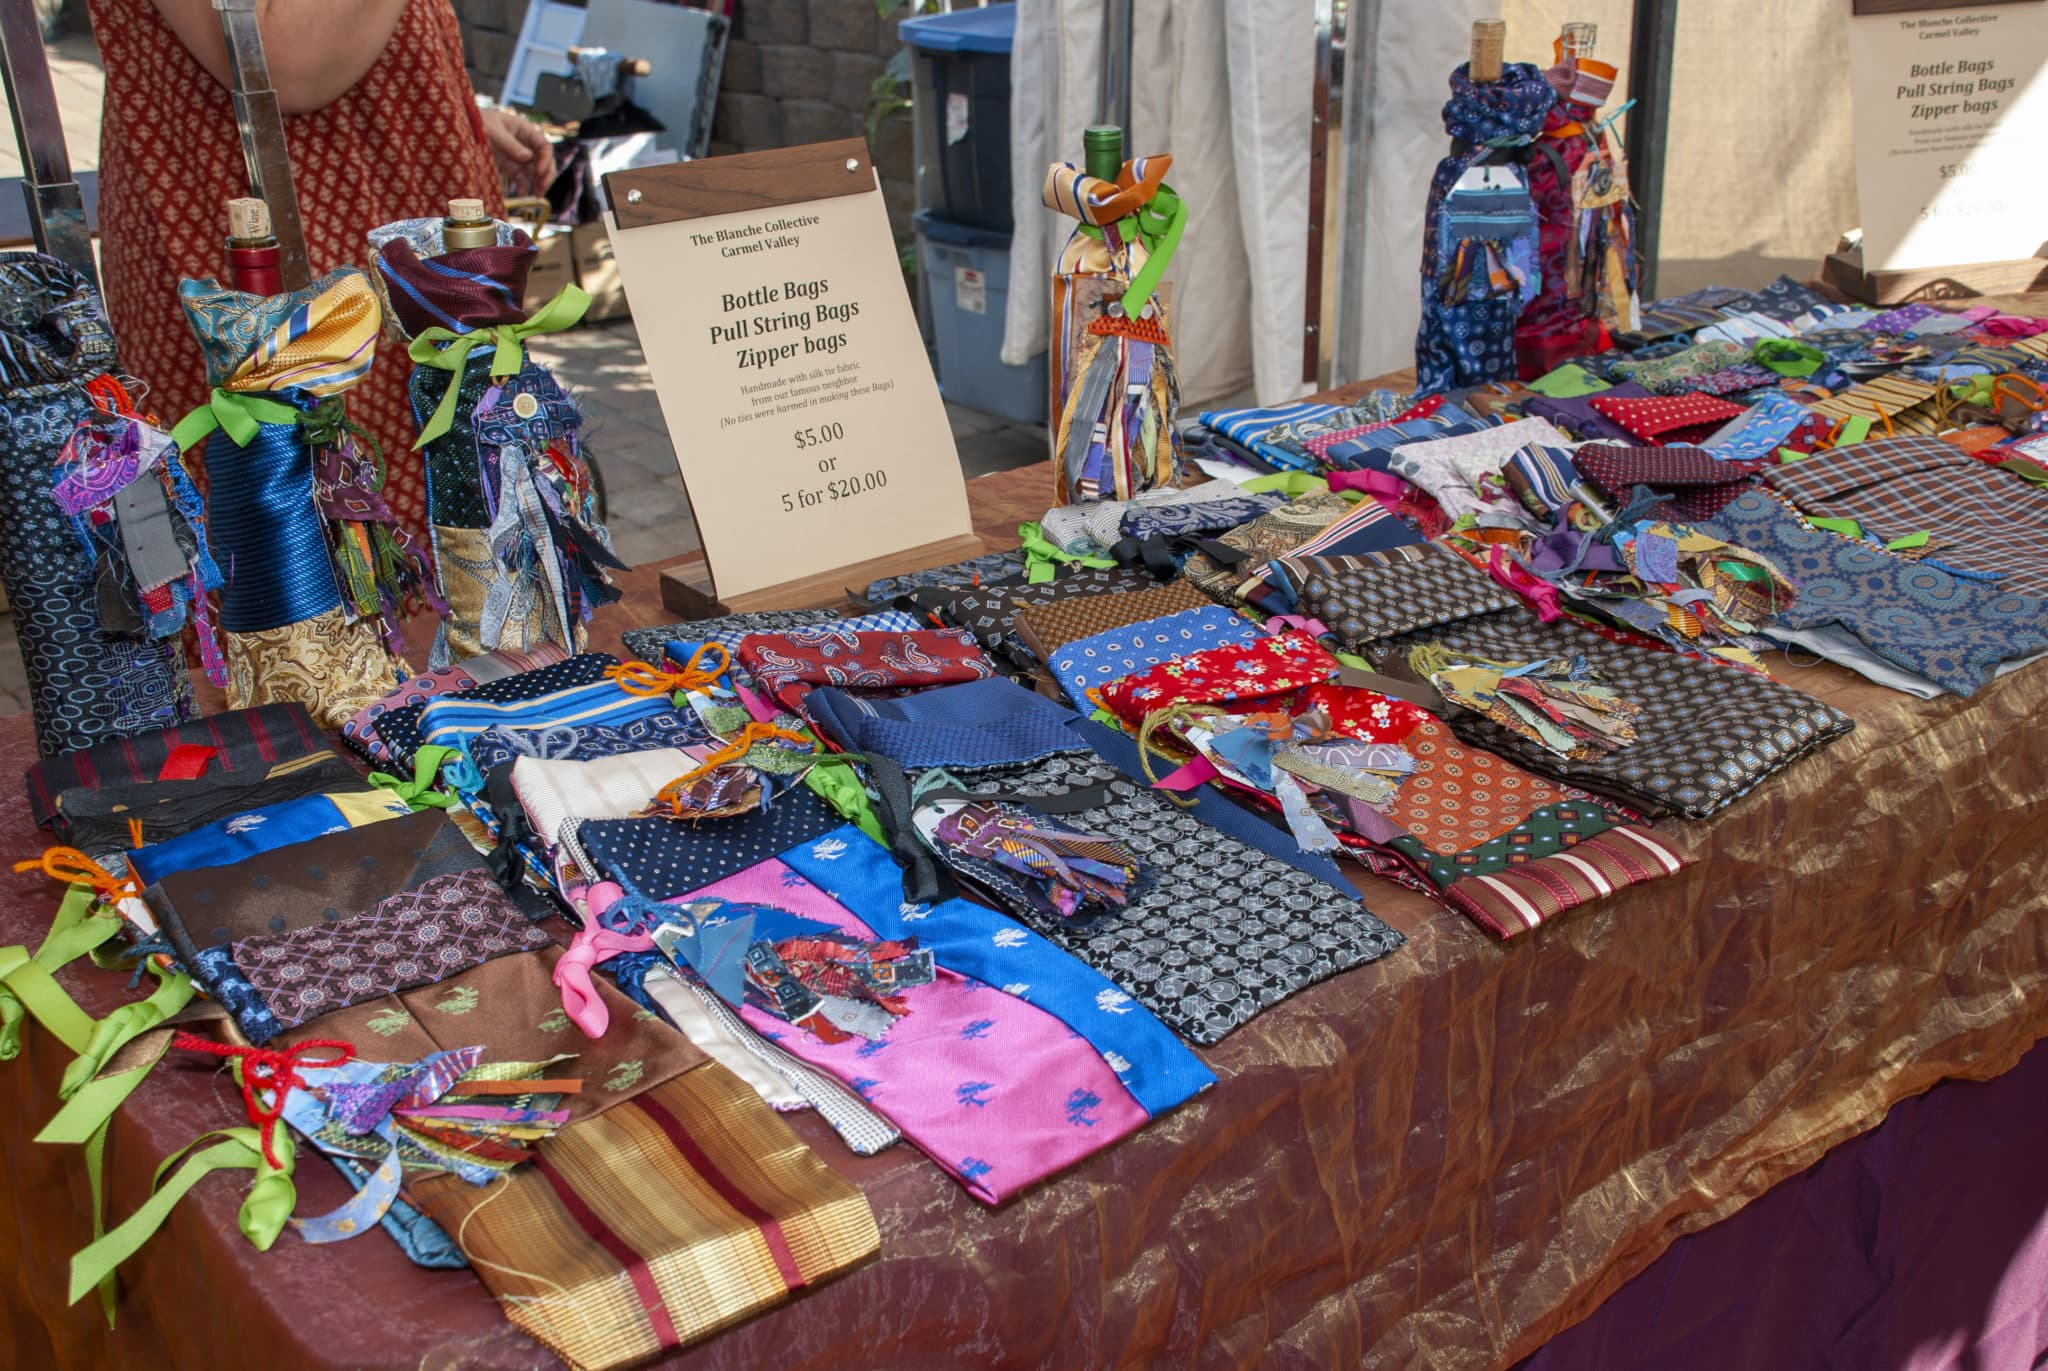 table with colorful fabric sewn into bags to hold bottles, as well as colorful pouches on the table.